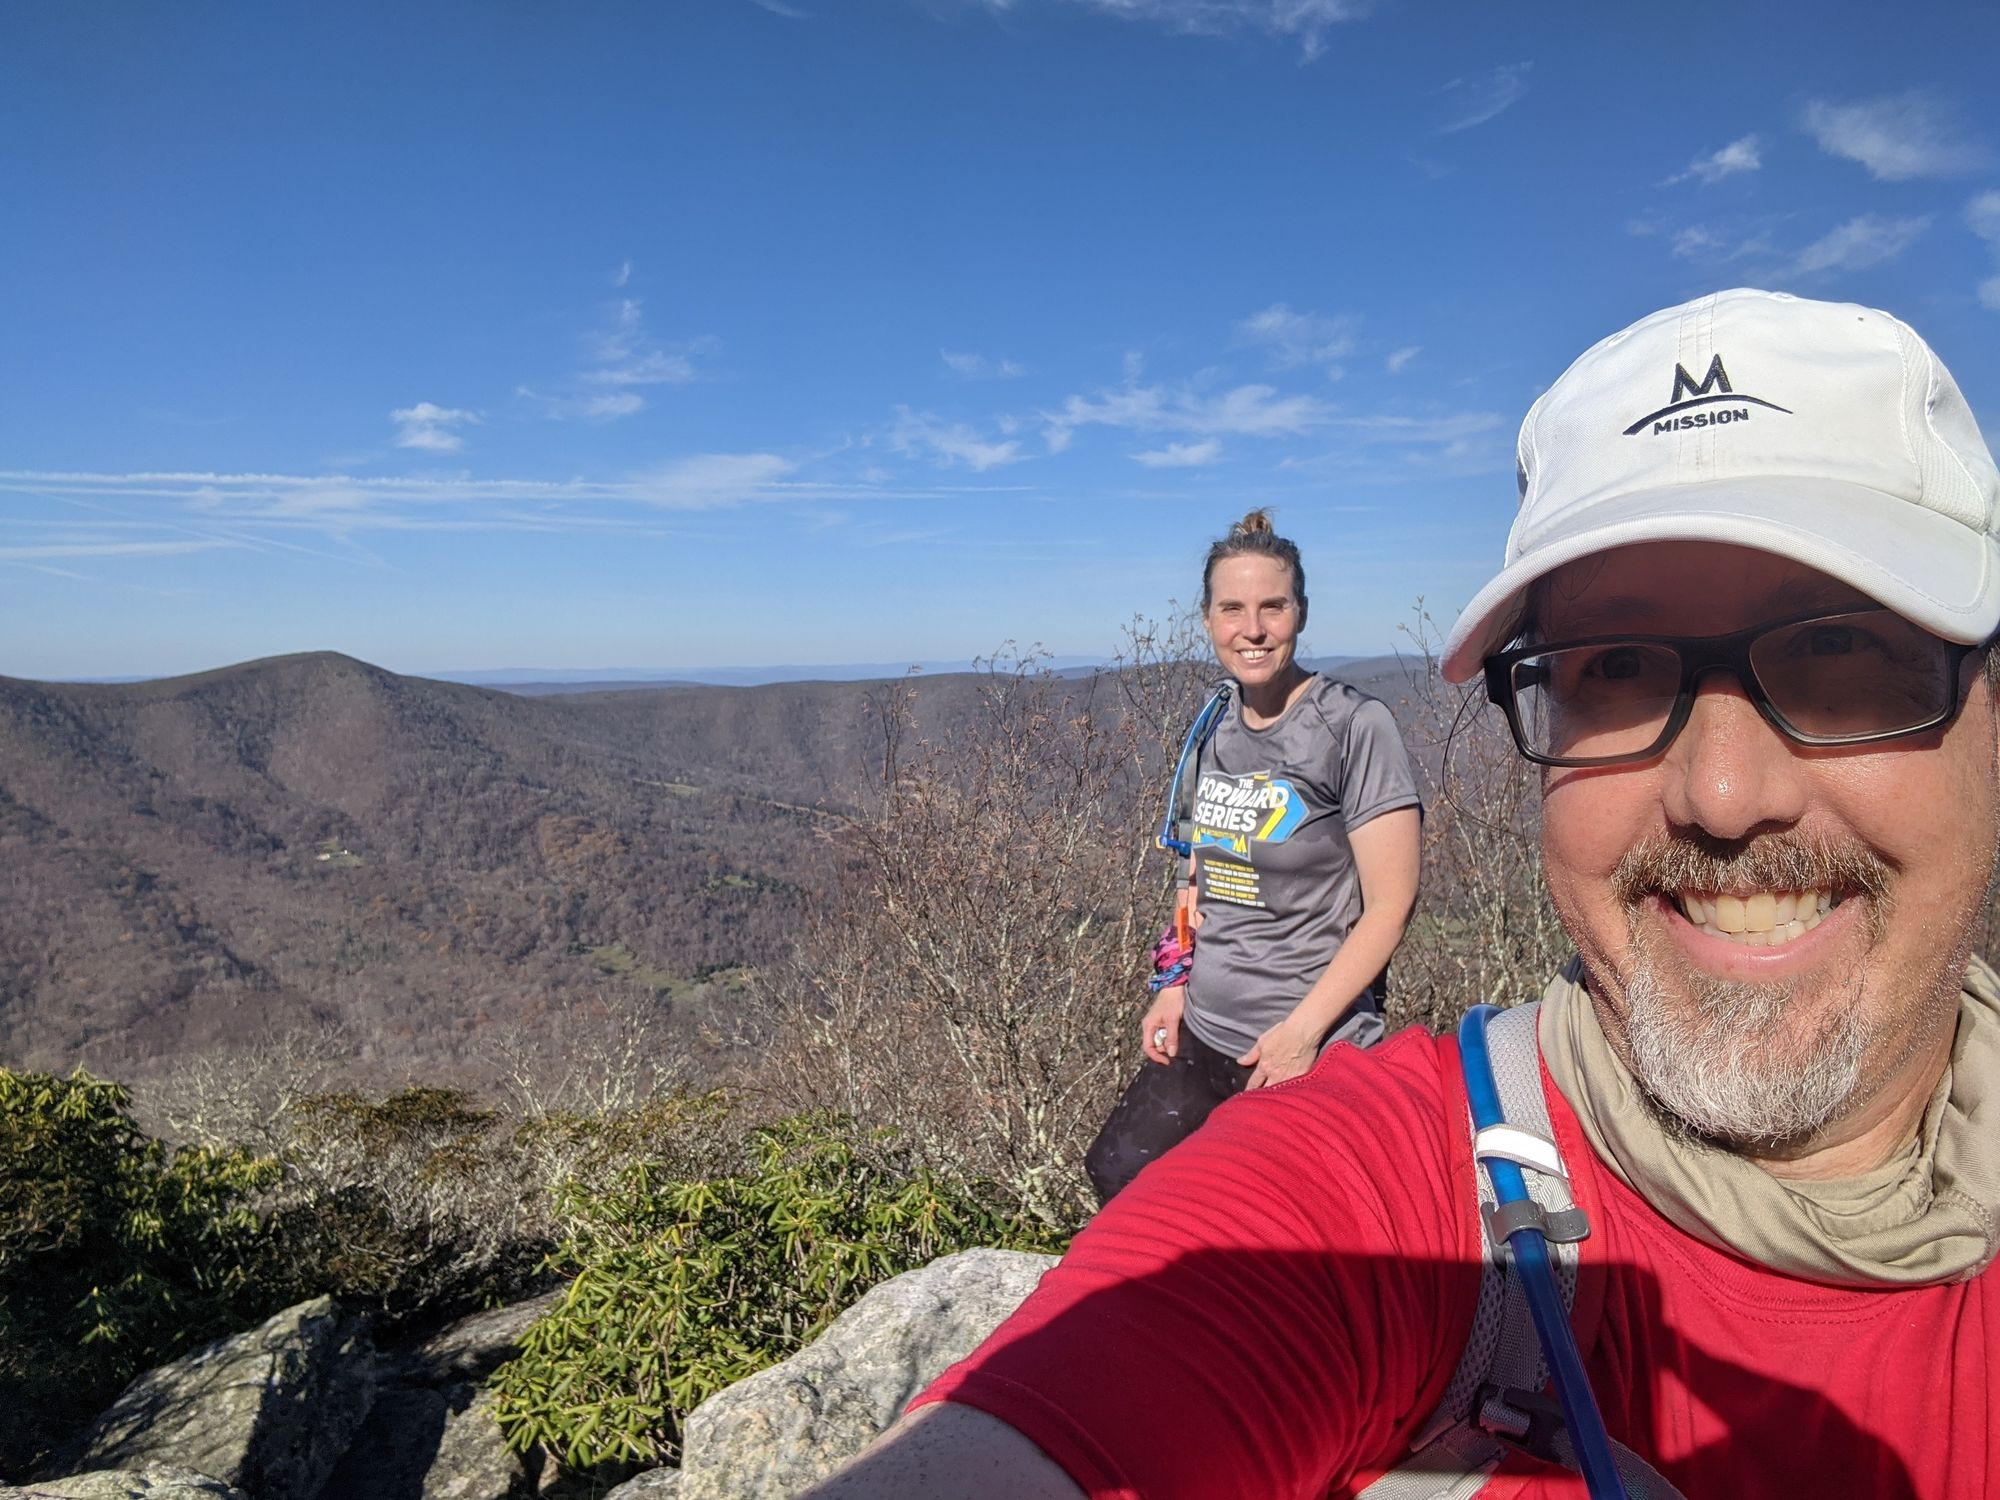 Hiking the Roanoke Valley AT in 14 Hikes: Part 10